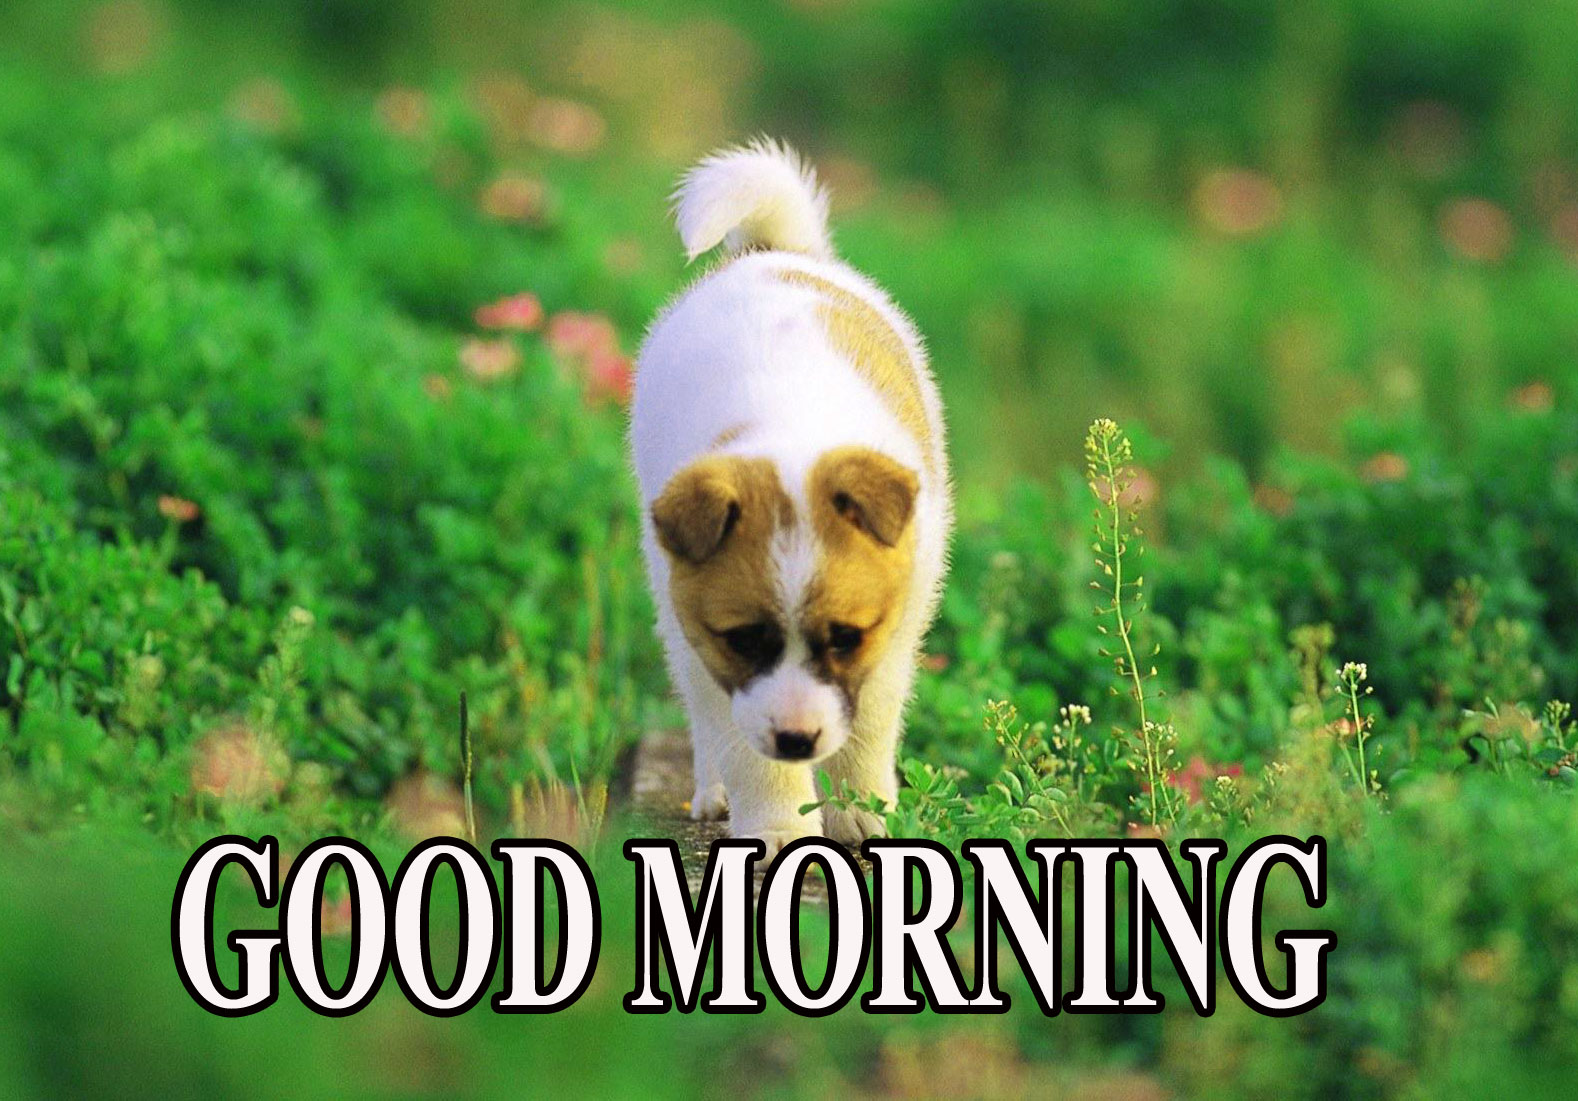 BEAUTIFUL LATEST AMAZING ALL GOOD MORNING WISHES IMAGES PHOTO PICTURES FREE DOWNLOAD